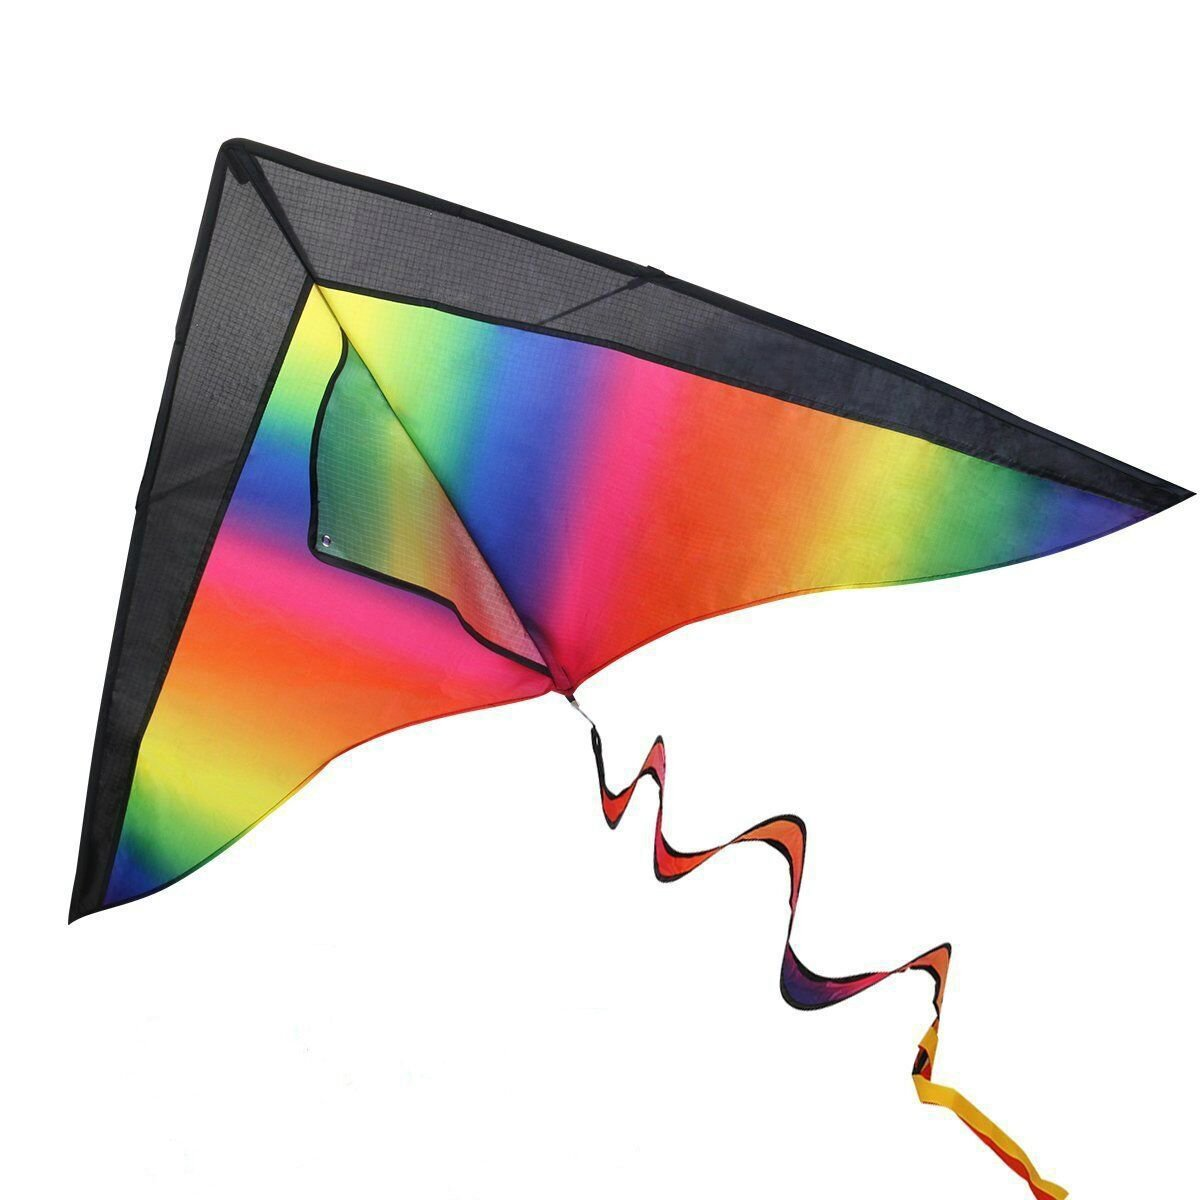 iBaseToy Huge Rainbow Kite for Kids and Adults with String & 3 Different Tails - Easy Flyer Kite for Outdoor Games Activities, 47'' x 23'' by iBaseToy